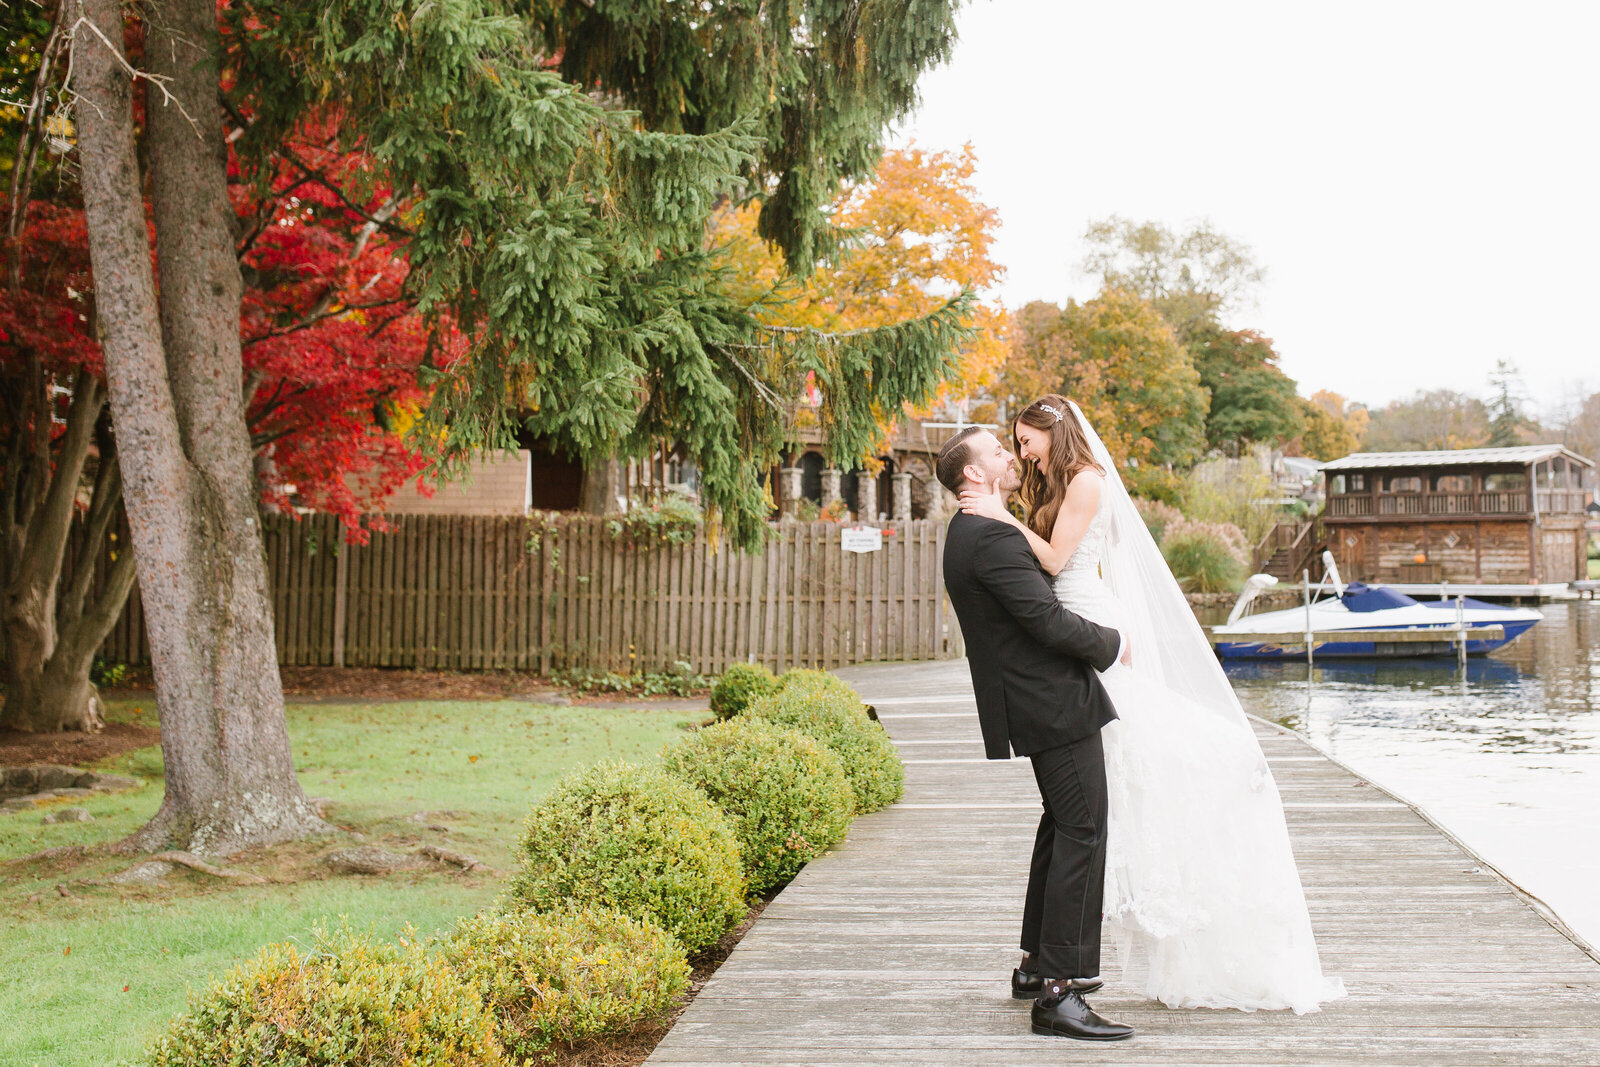 Lake-Mohawk-Country-Club-Sparta-fall-wedding-photographer-Jane-d-Martinez-Photography-5712